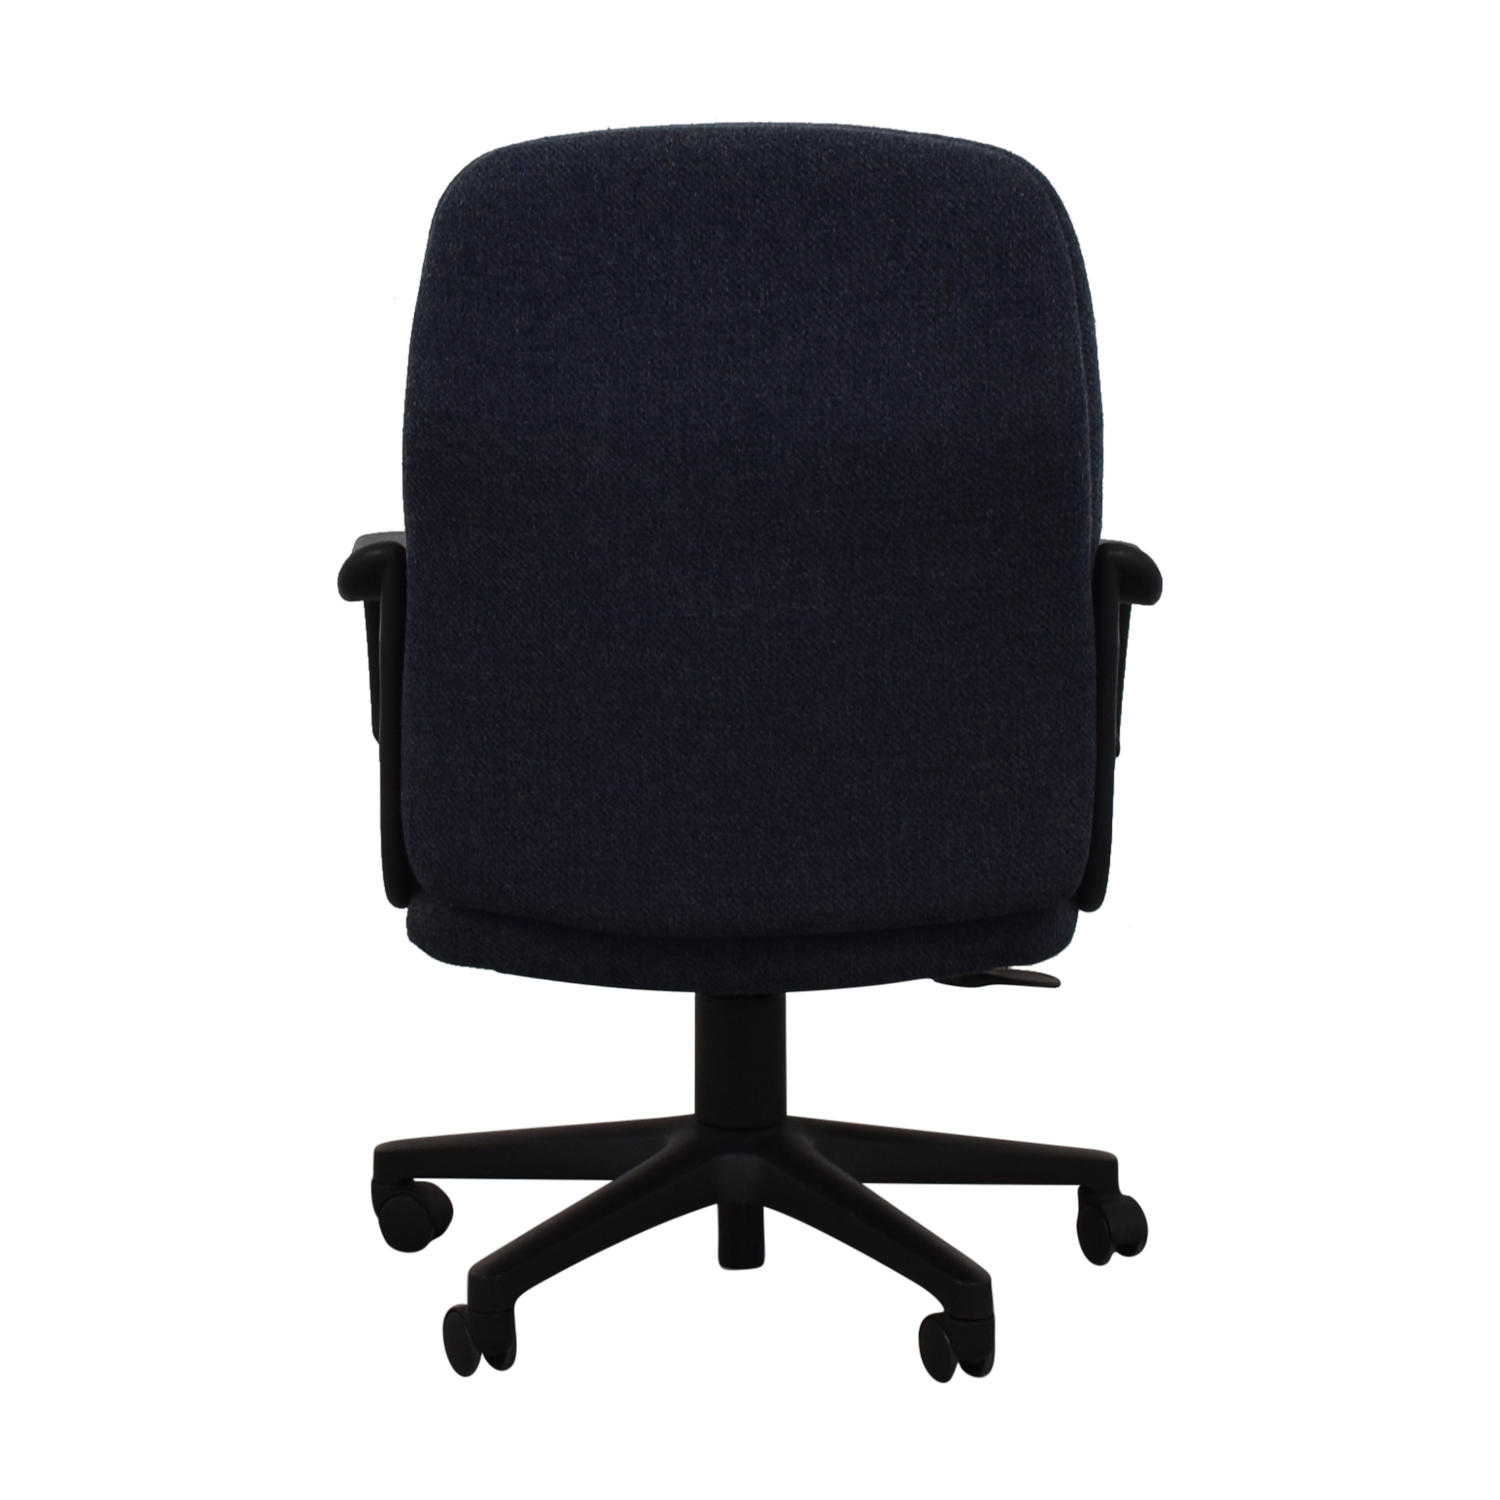 HON HON Grey High-Back Executive Swivel Office Chair dimensions